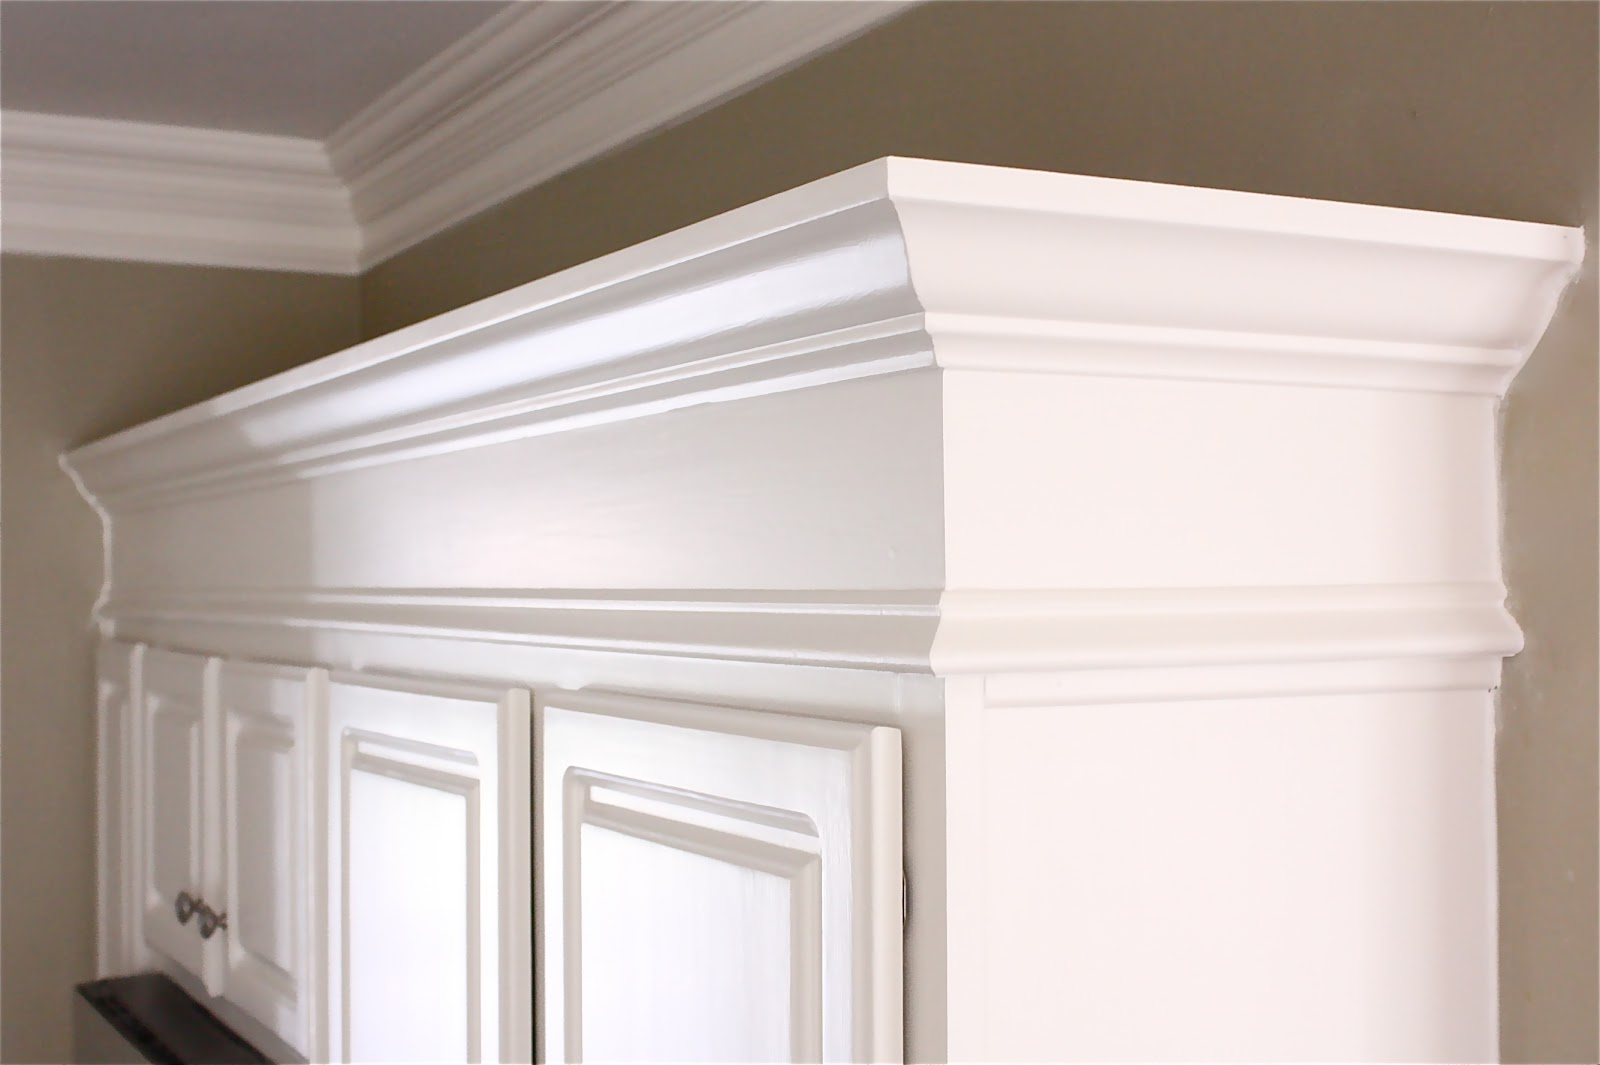 Kitchen Cabinet Crown Molding High Gloss Cabinets The Yellow Cape Cod Sub Zero And Wolf Delicious Design